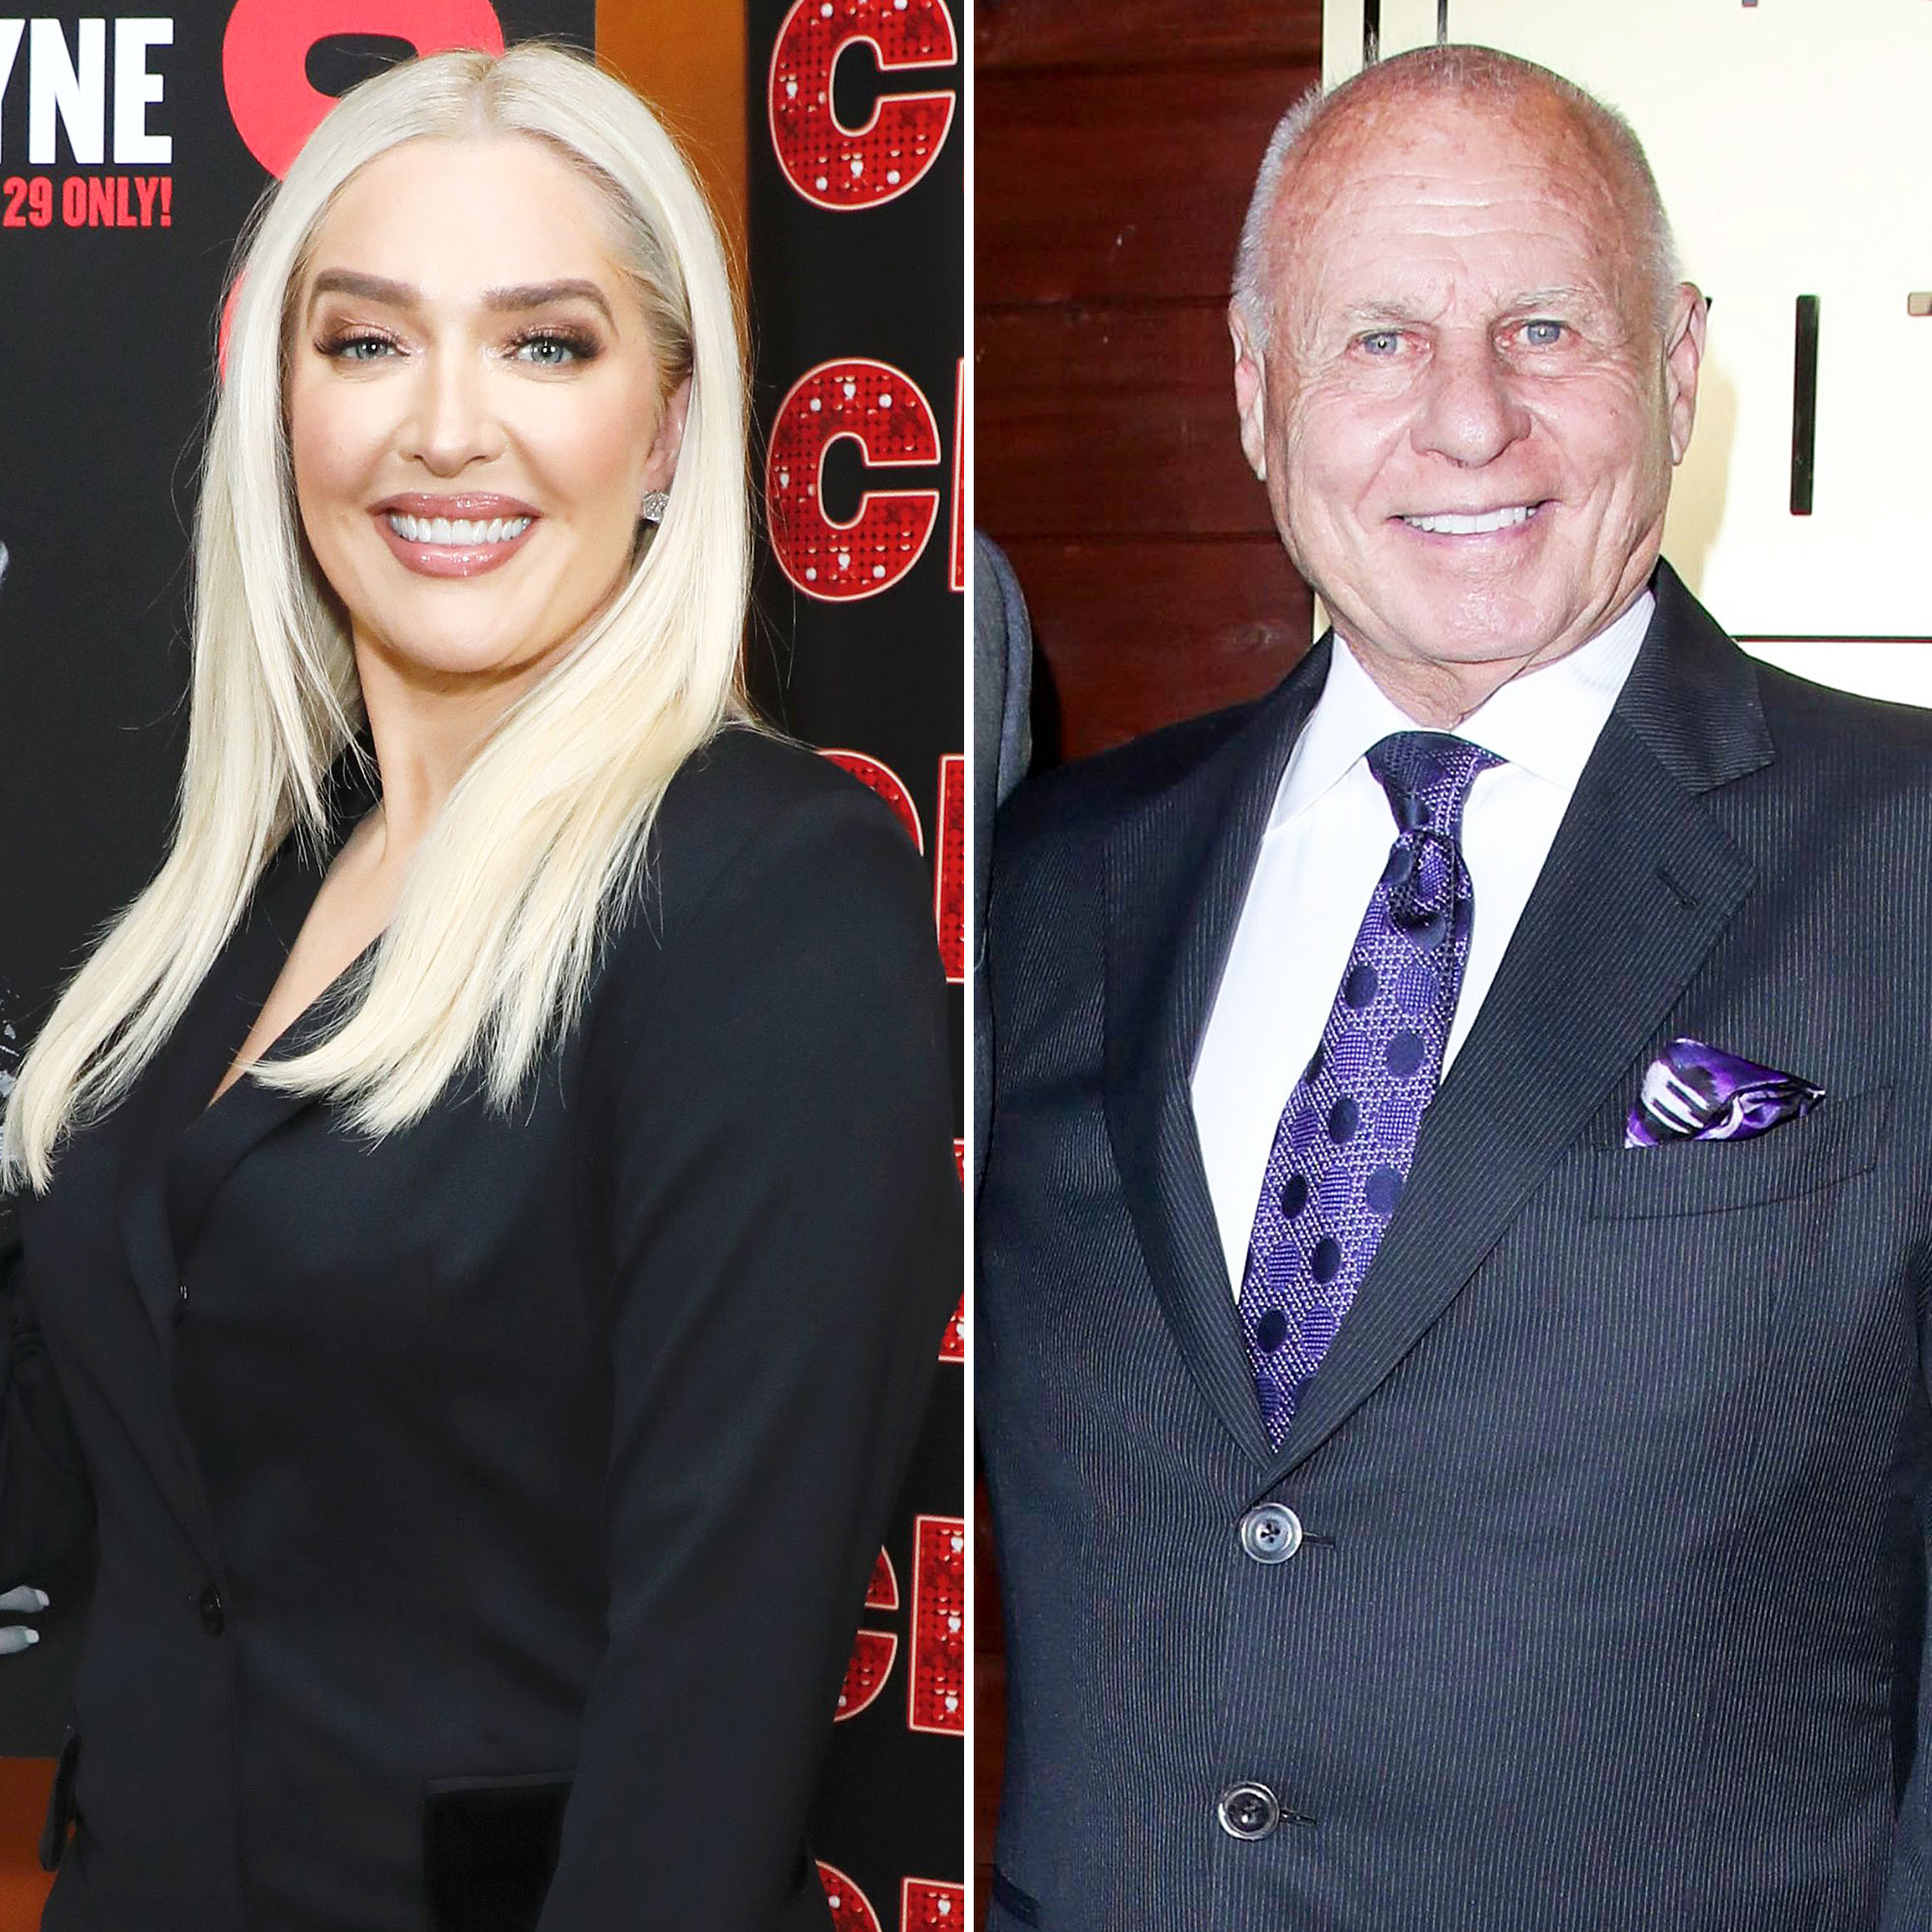 Erika Jayne Understands the Interest in Her Sex Life With Husband Tom Girard